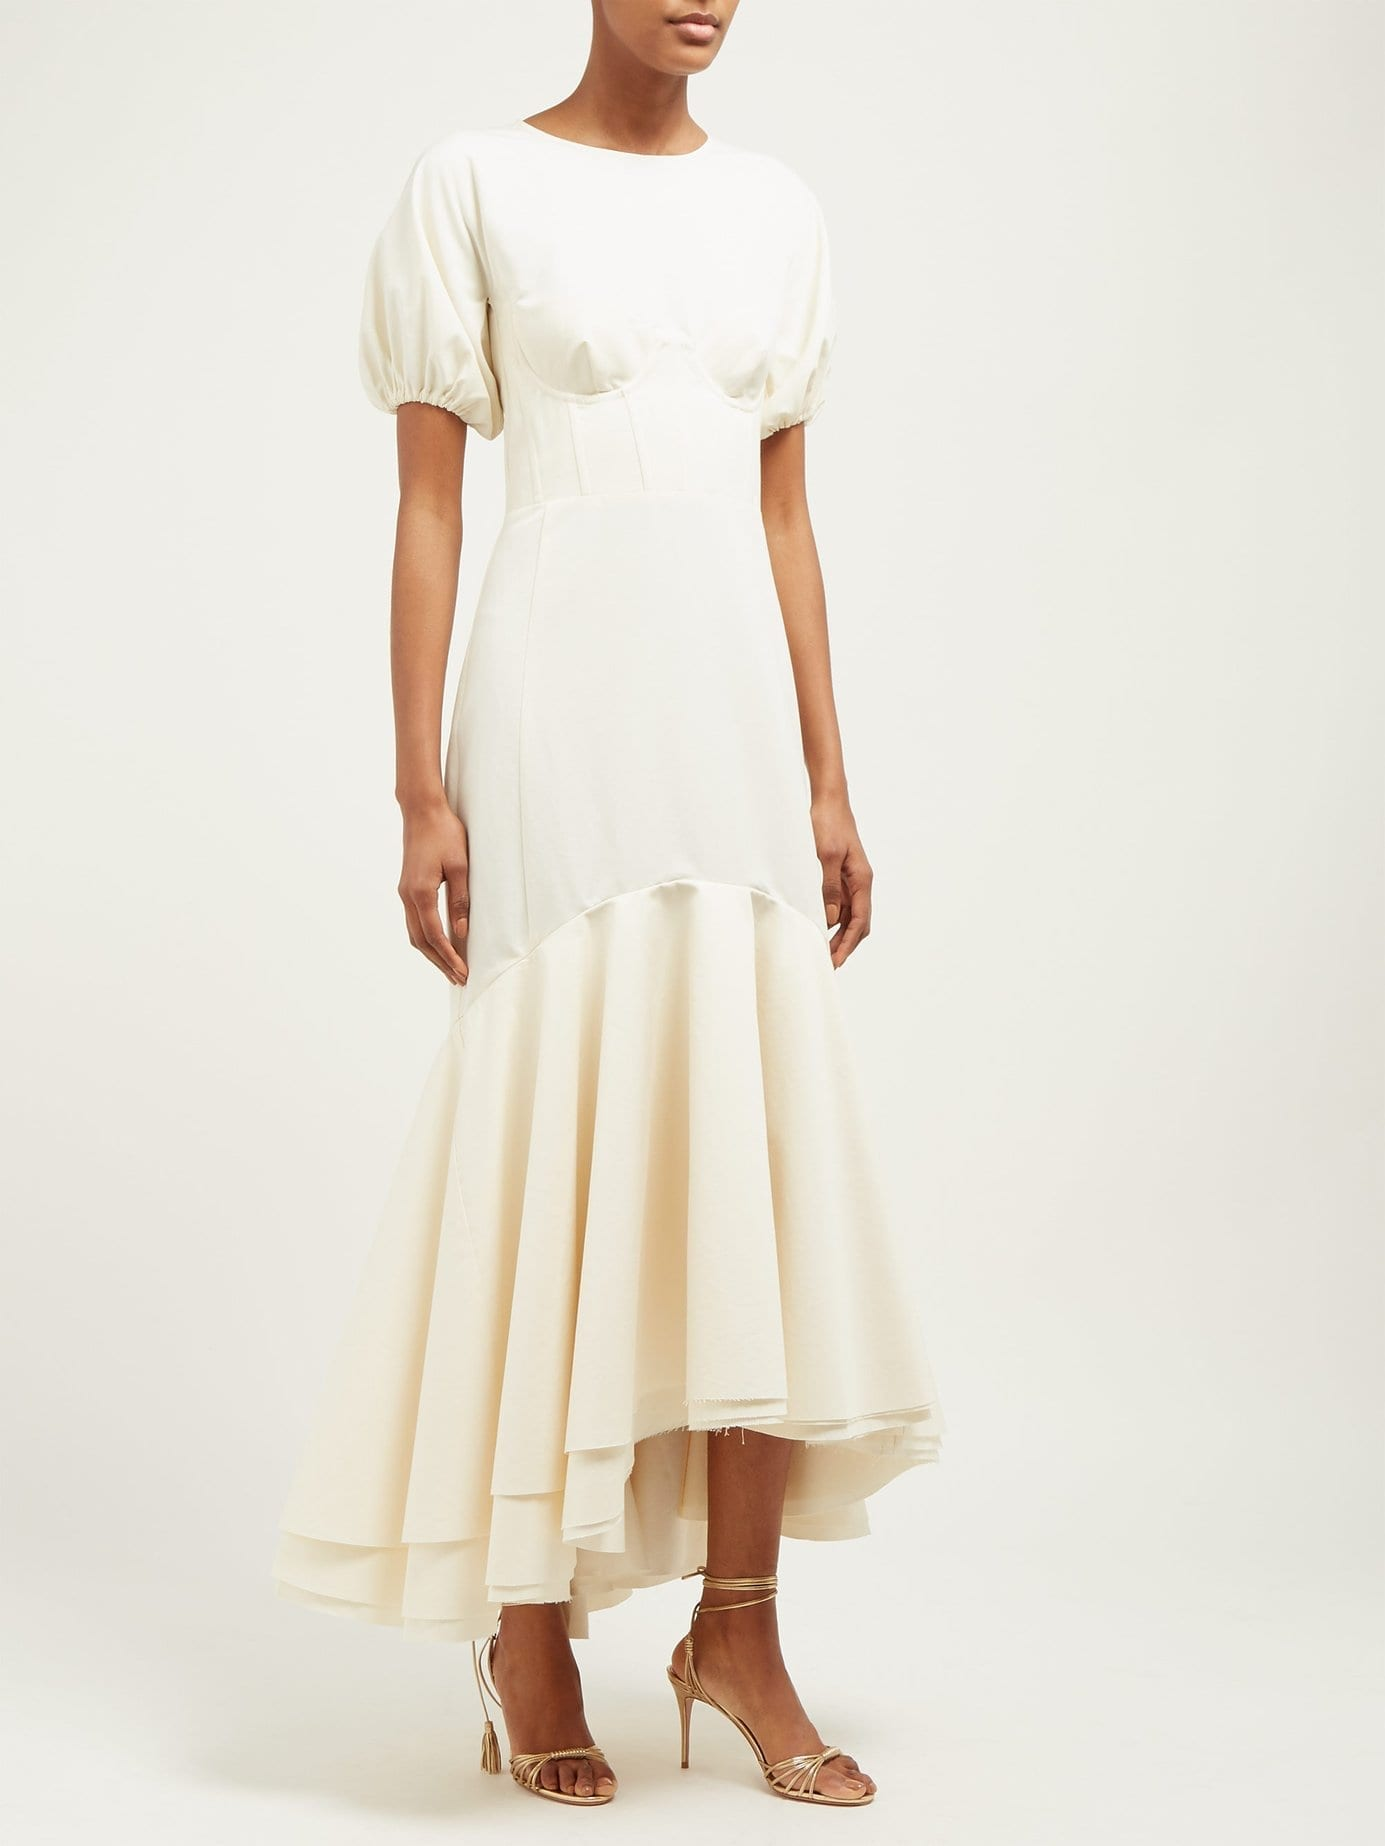 BROCK COLLECTION Odliguard Cotton-Faille White Gown